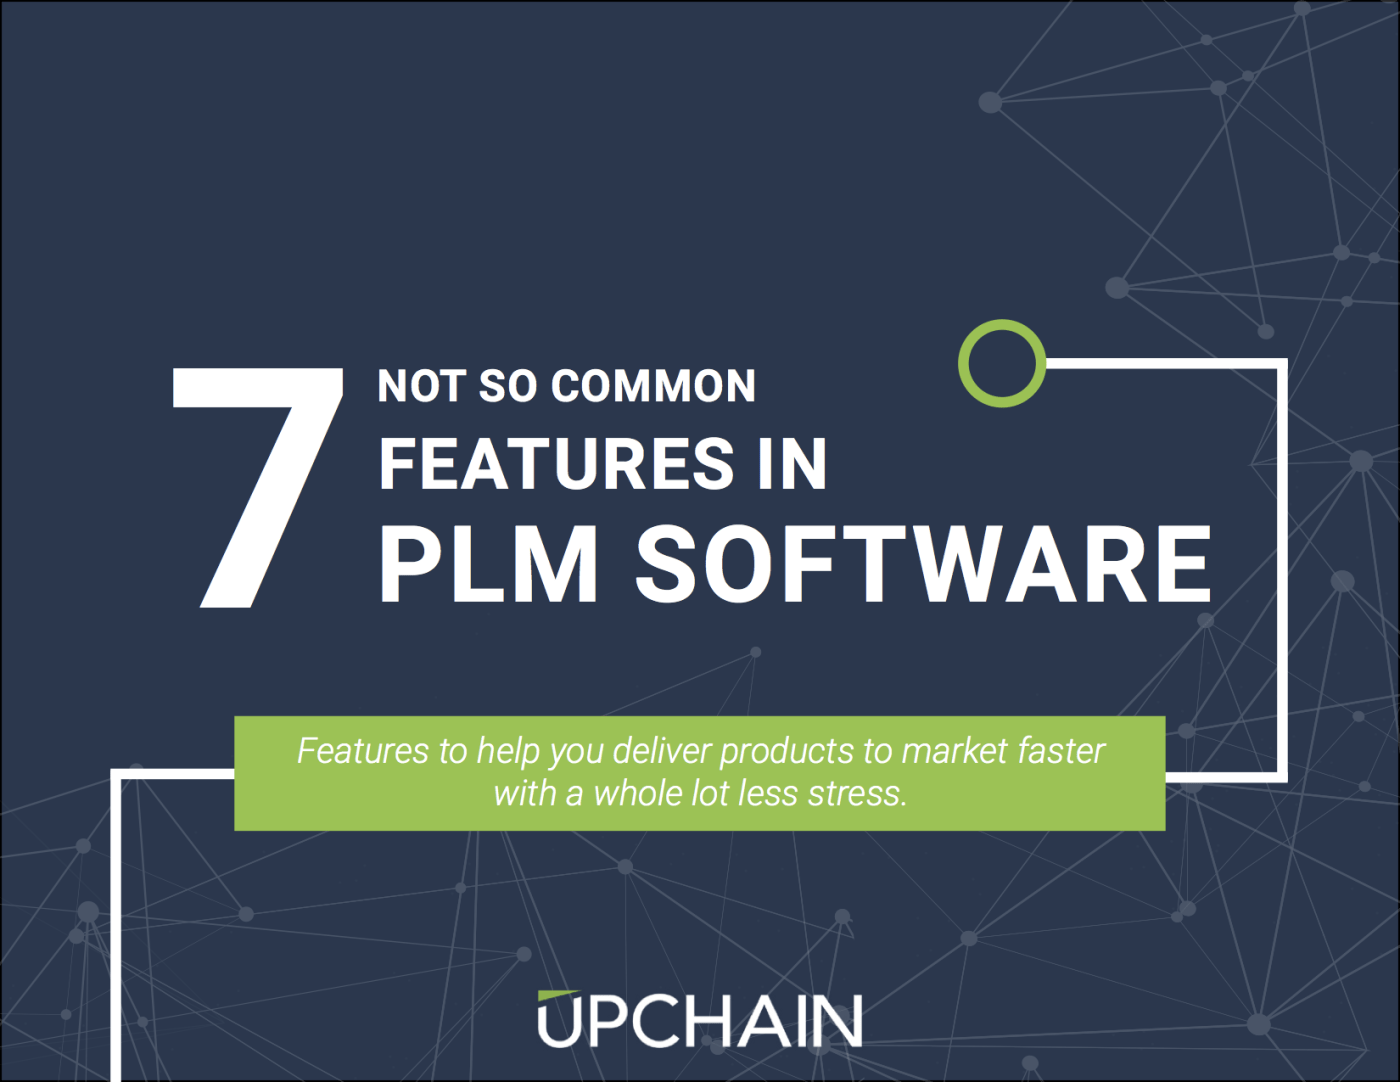 7 not so common features in PLM Software ebook: features to help you deliver products to market faster with a whole lot less stress. Upchain.